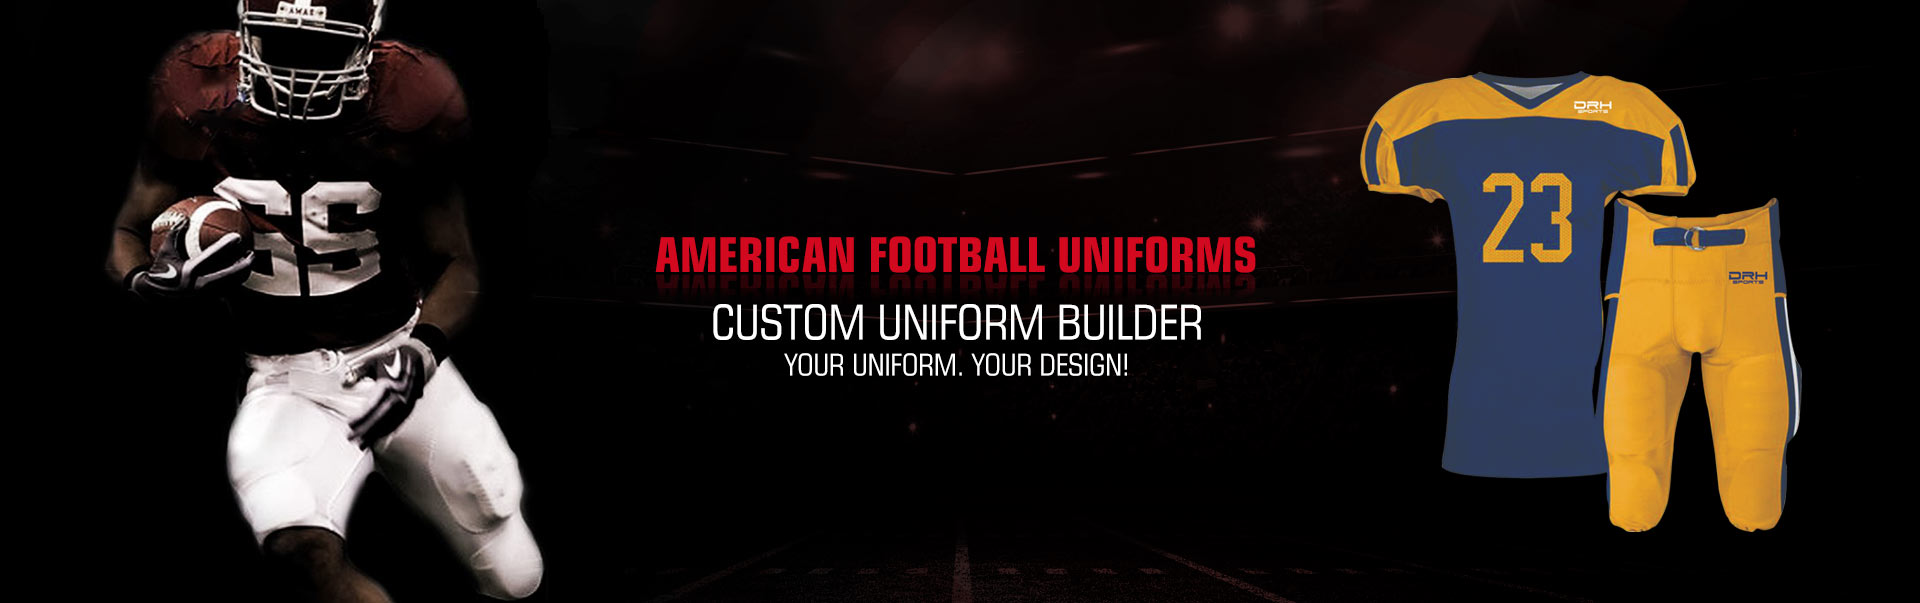 American Football Uniform Wholesaler, Suppliers in Regensburg